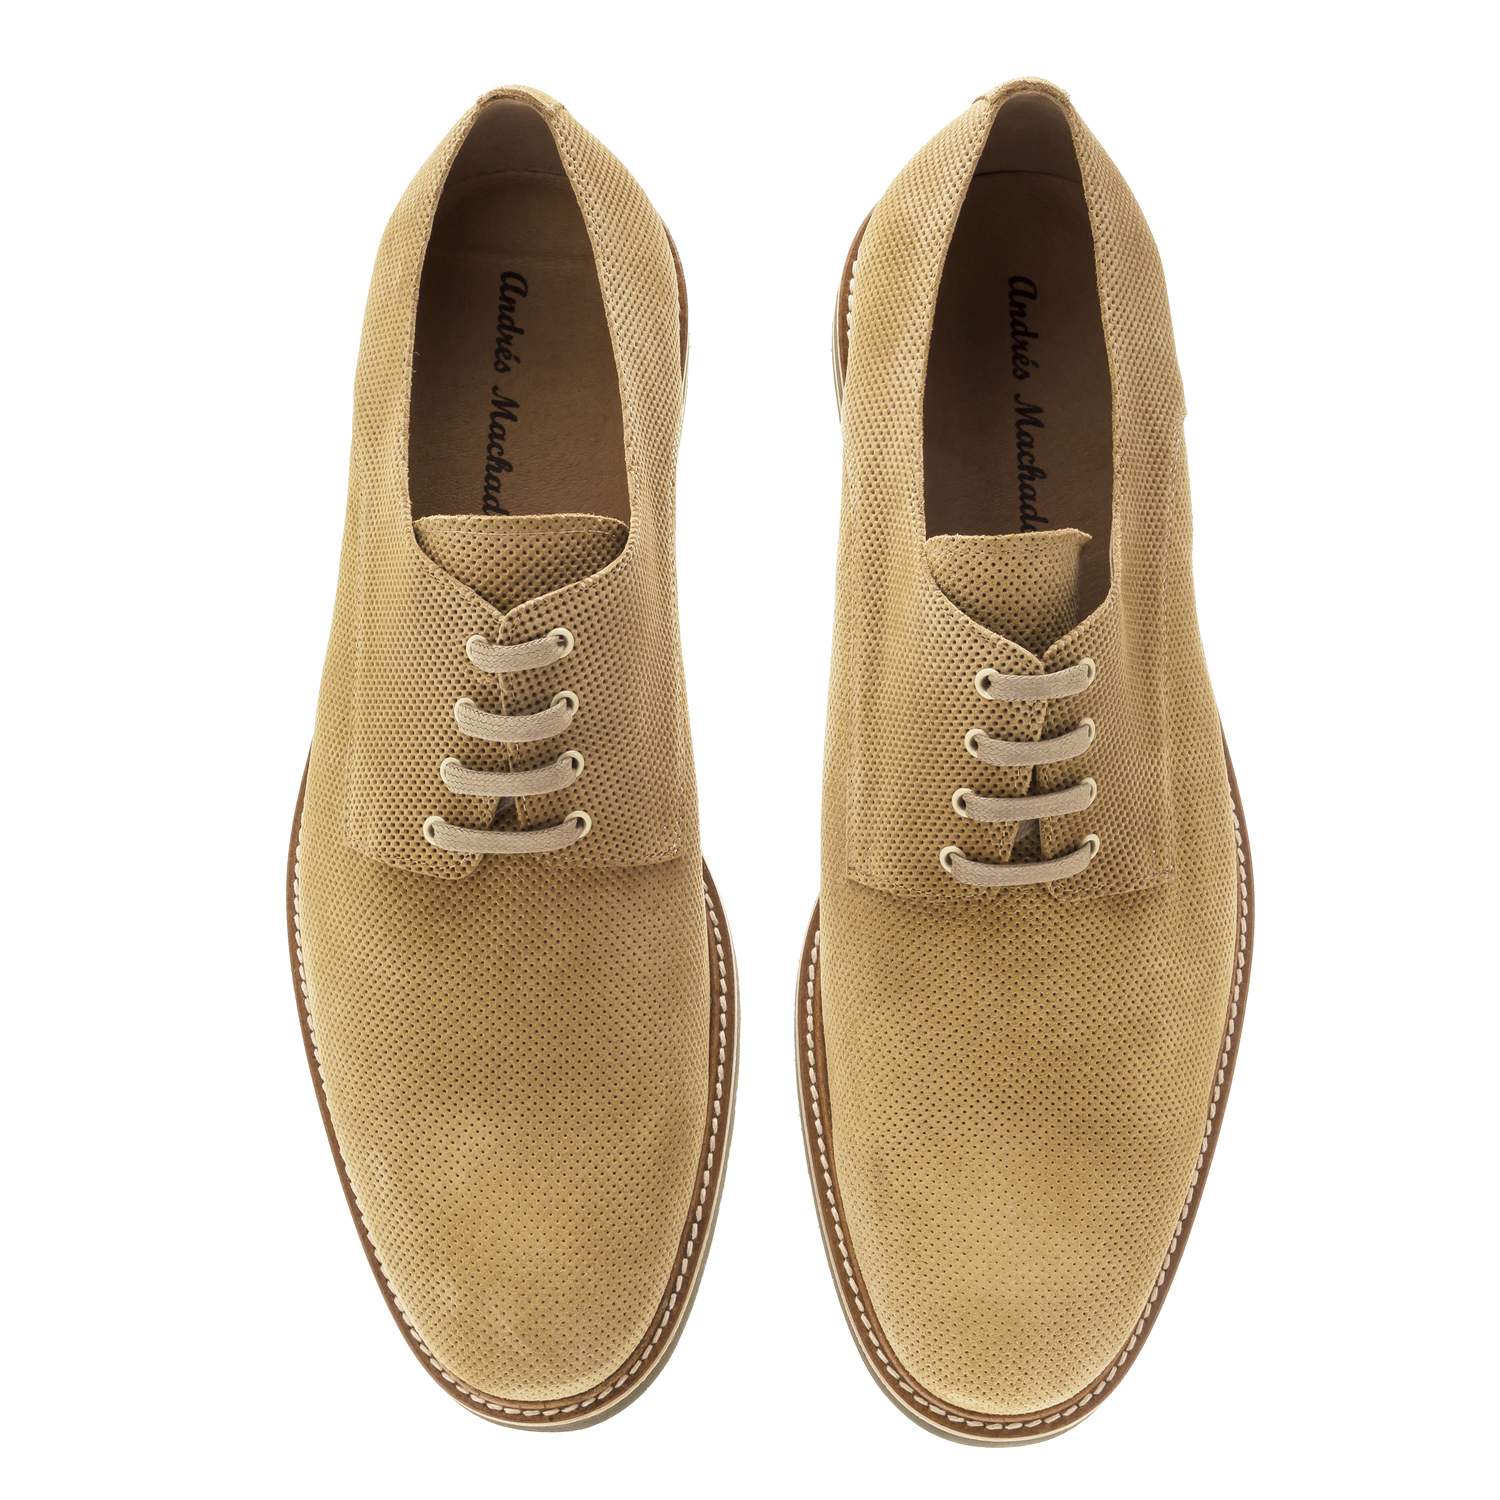 Lace-Up Shoes in Camel Split Leather